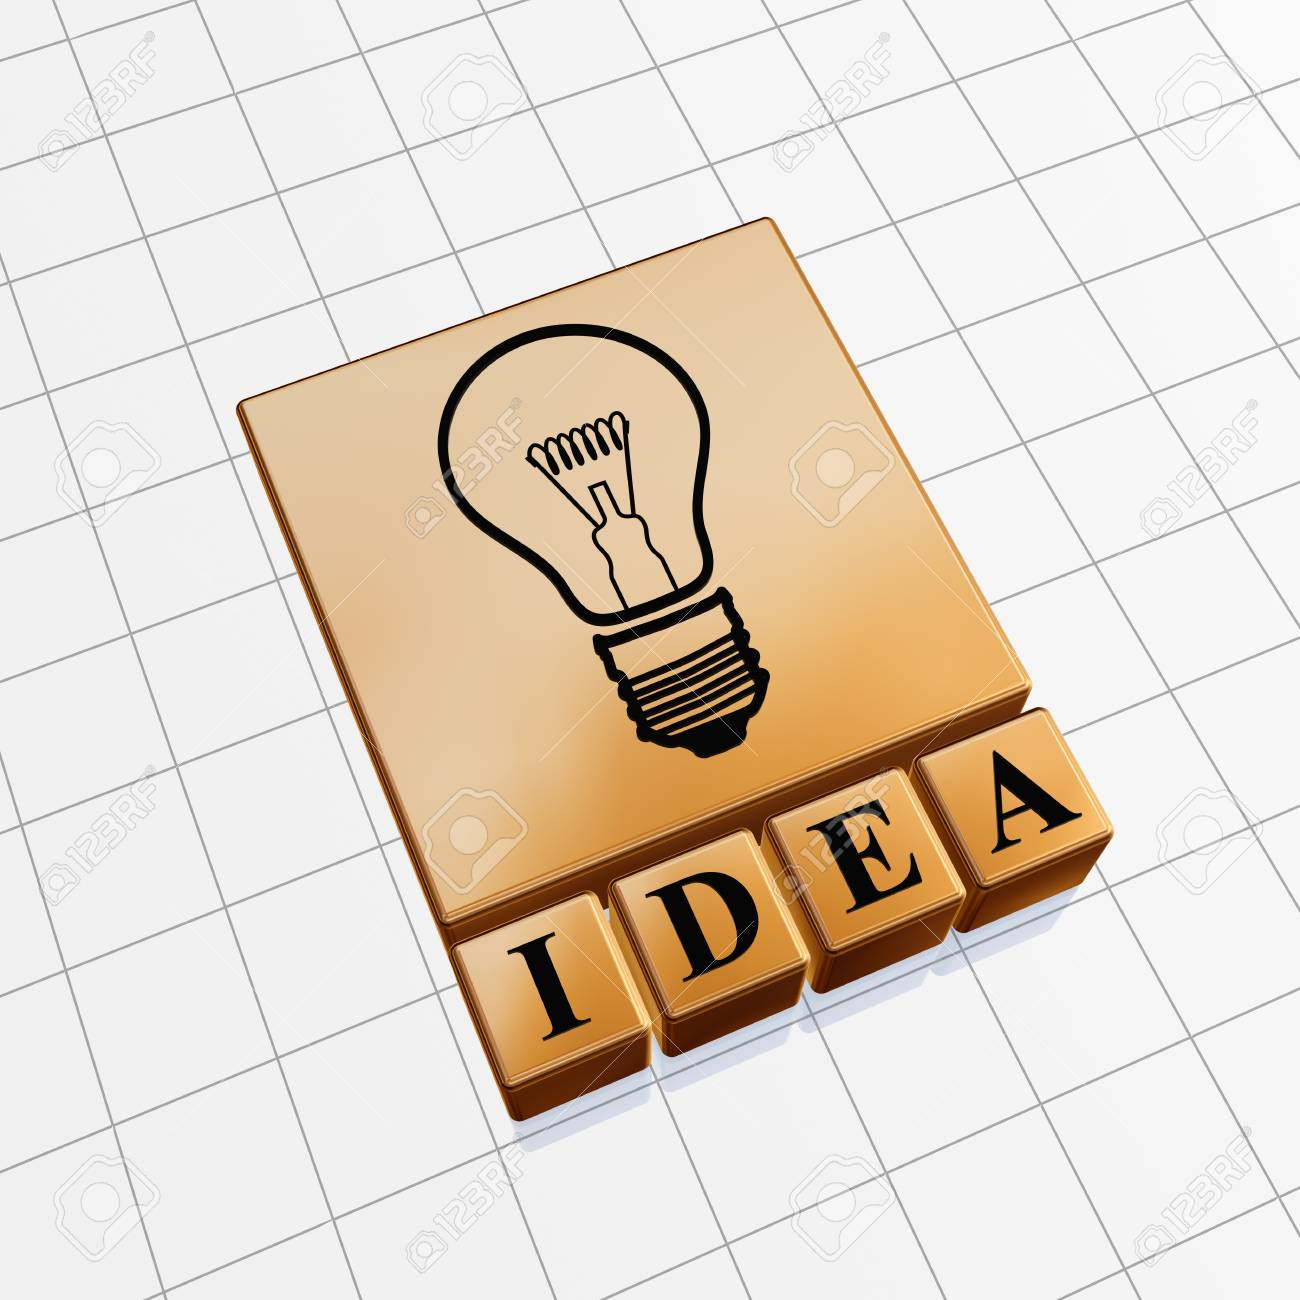 Idea concept image of text and light bulb sign Stock Photo - 13219687